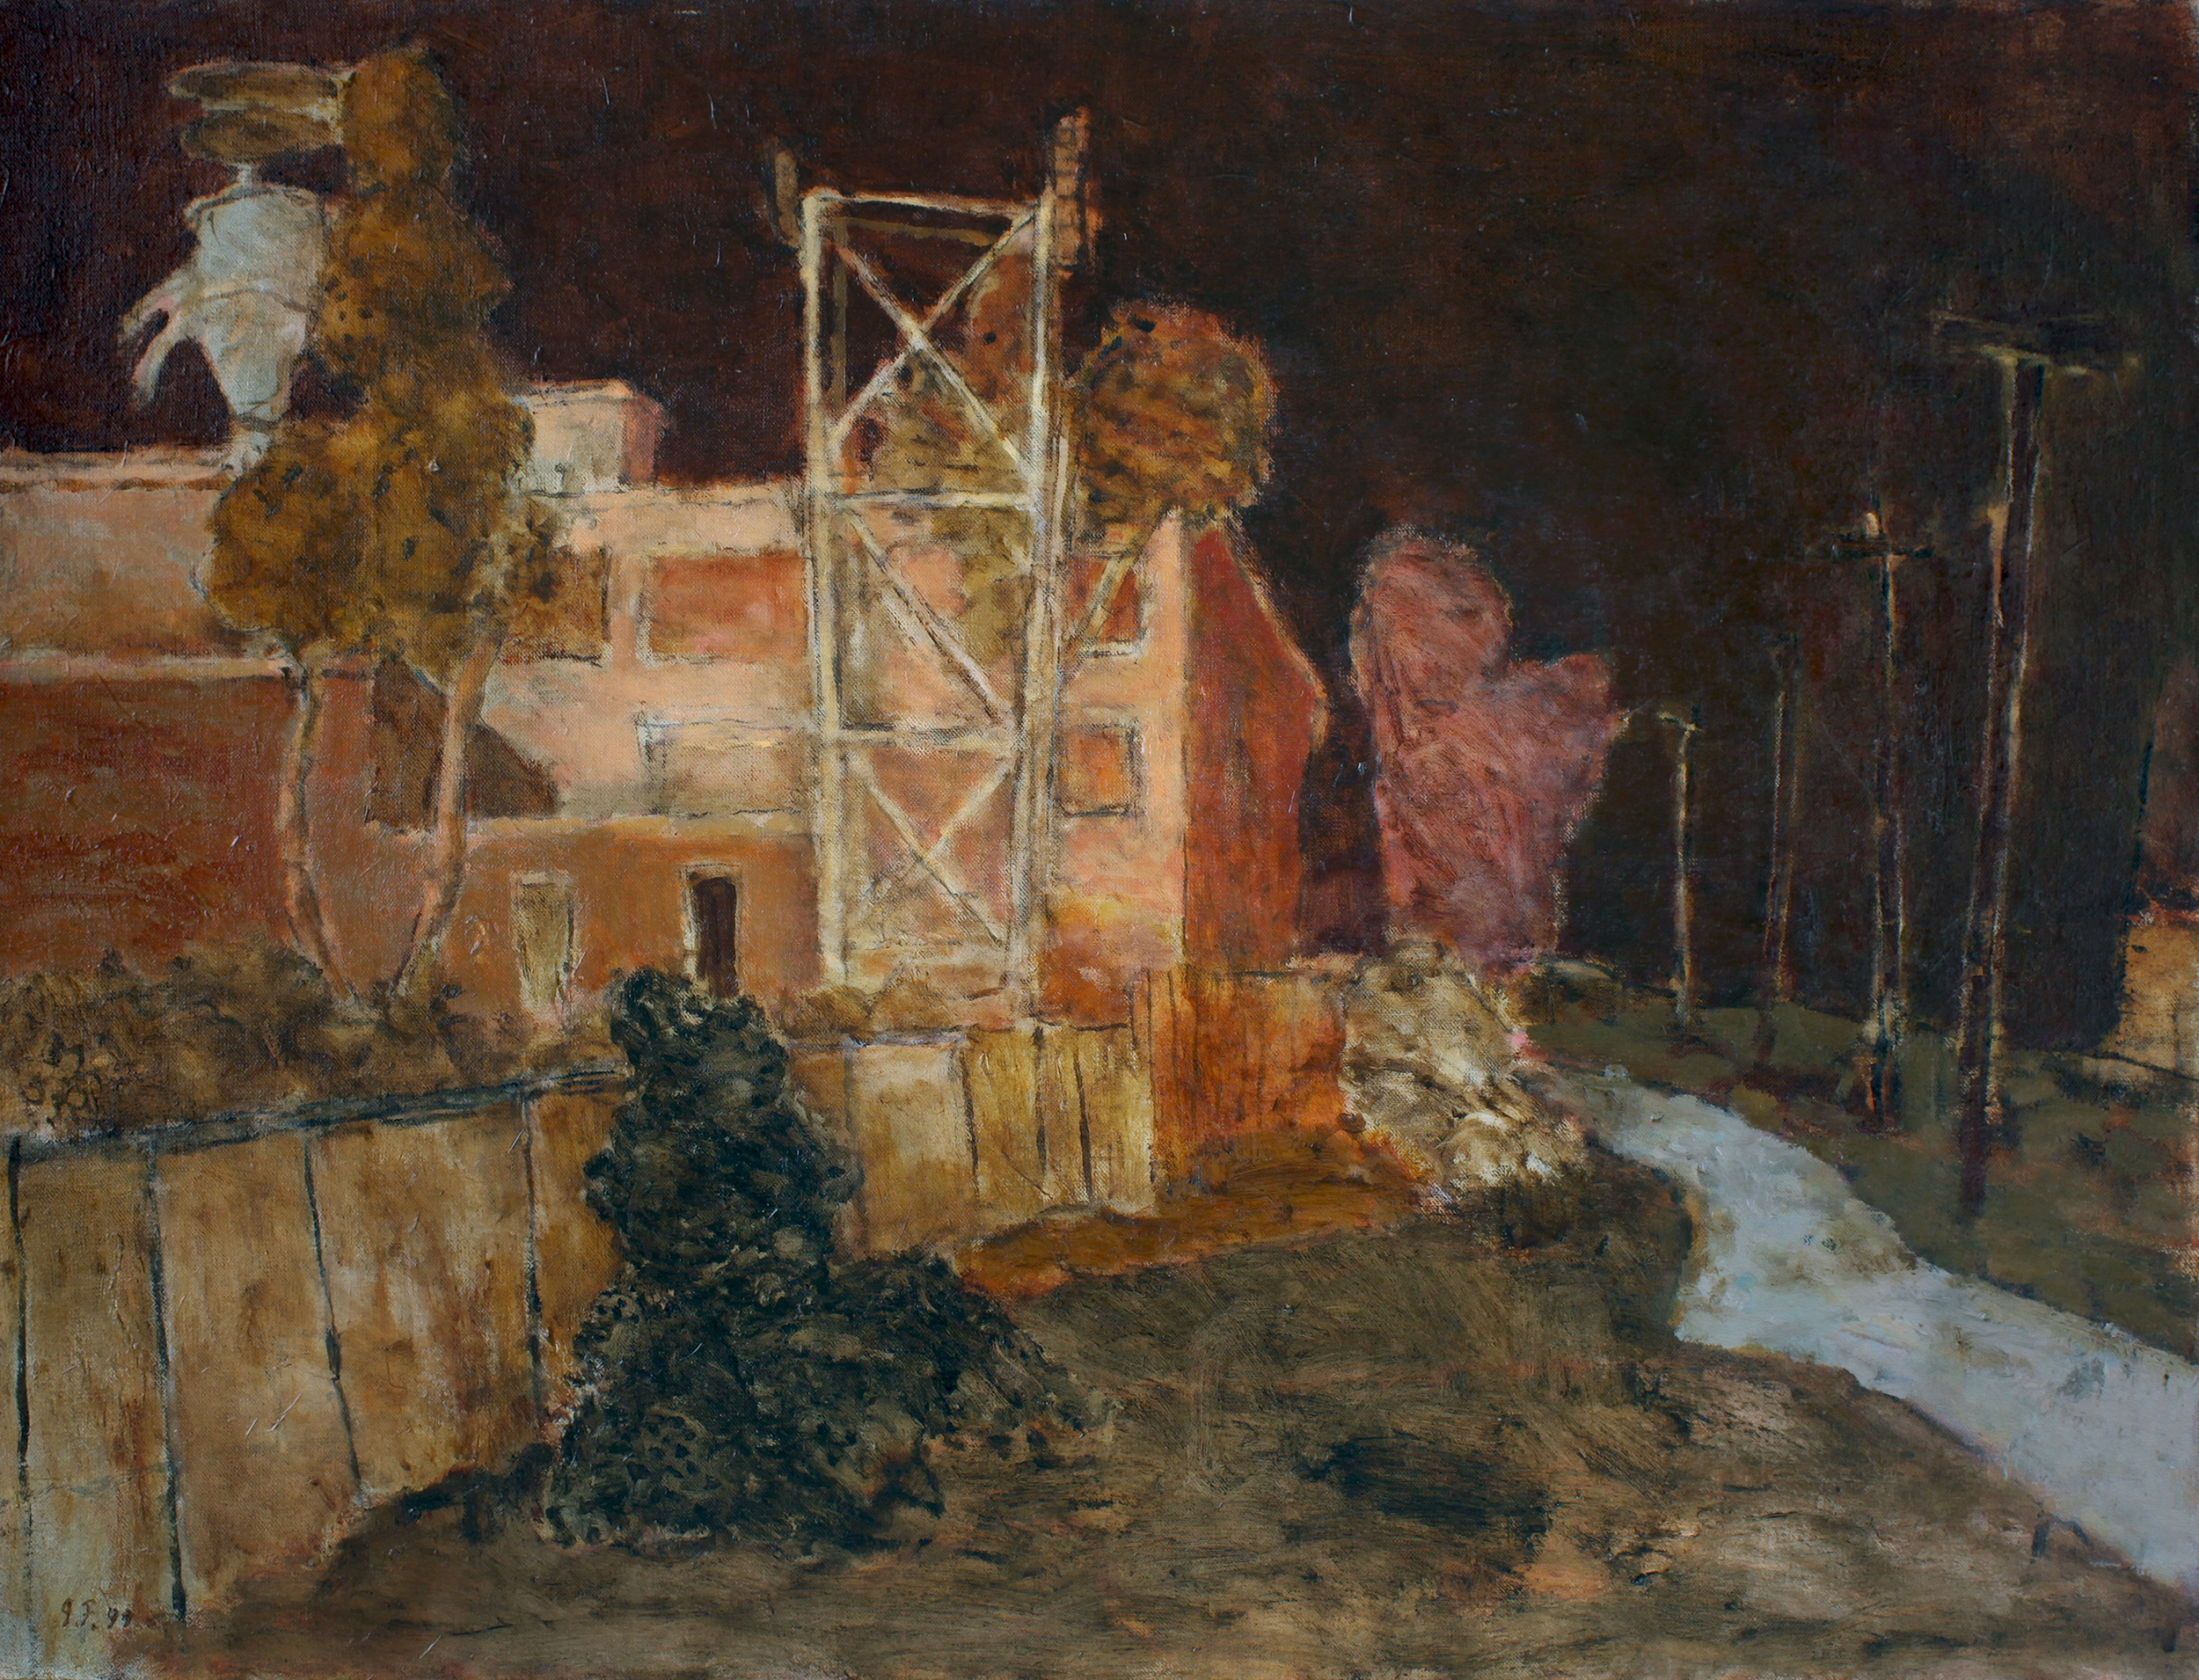 1999_St_Henri_II_oil_on_linen_35x40in_PF136.jpg